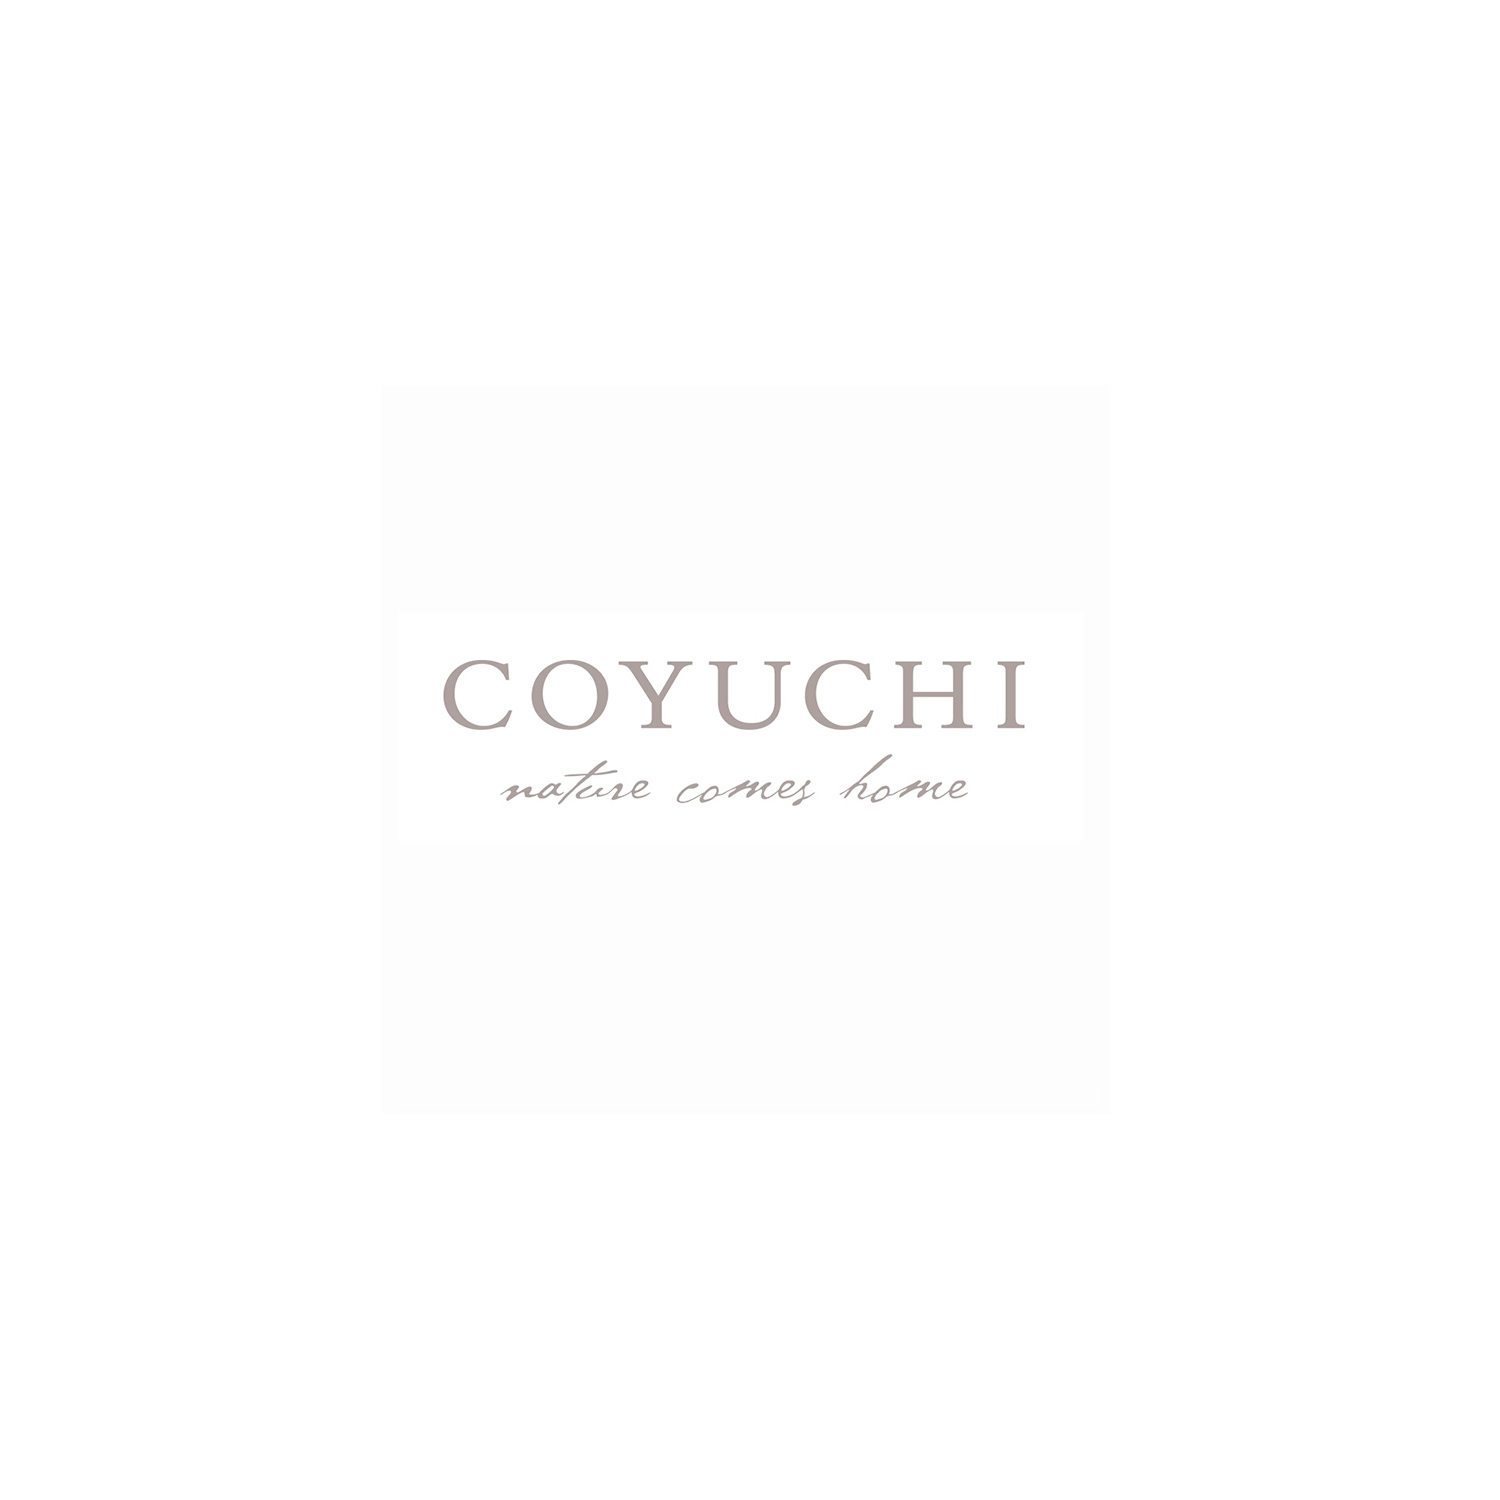 Coyuchi - This Japanese brand is extremely simple, but totally organic and luxe.